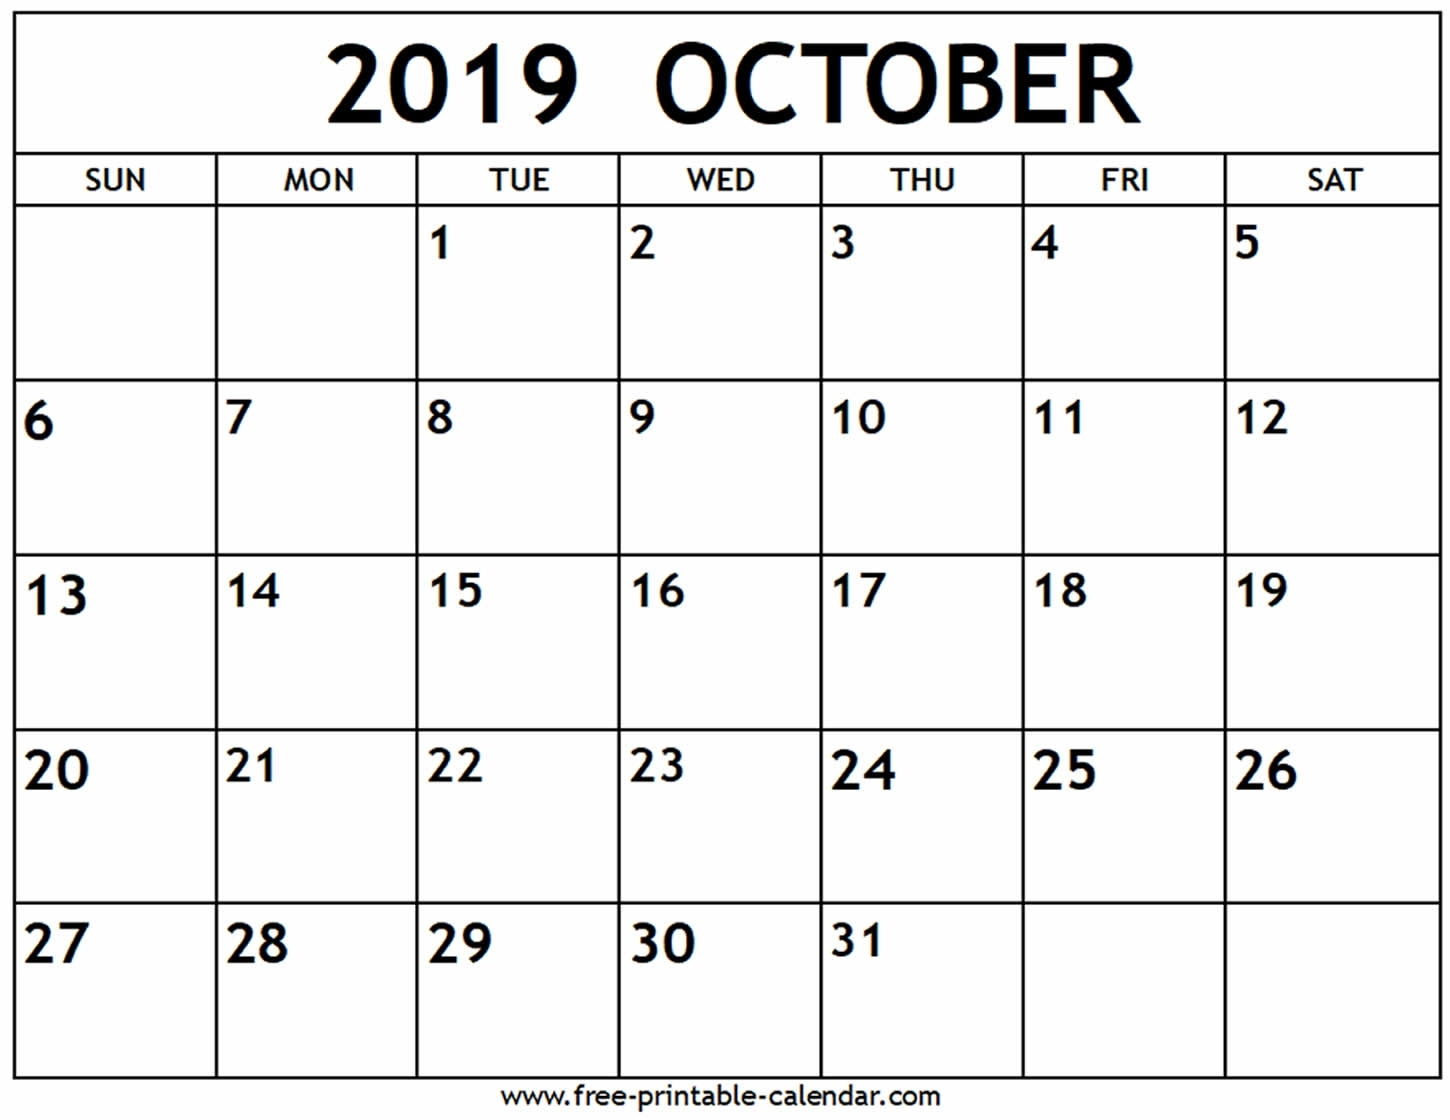 Good Print Calendar October 2019 : Mini Calendar Template